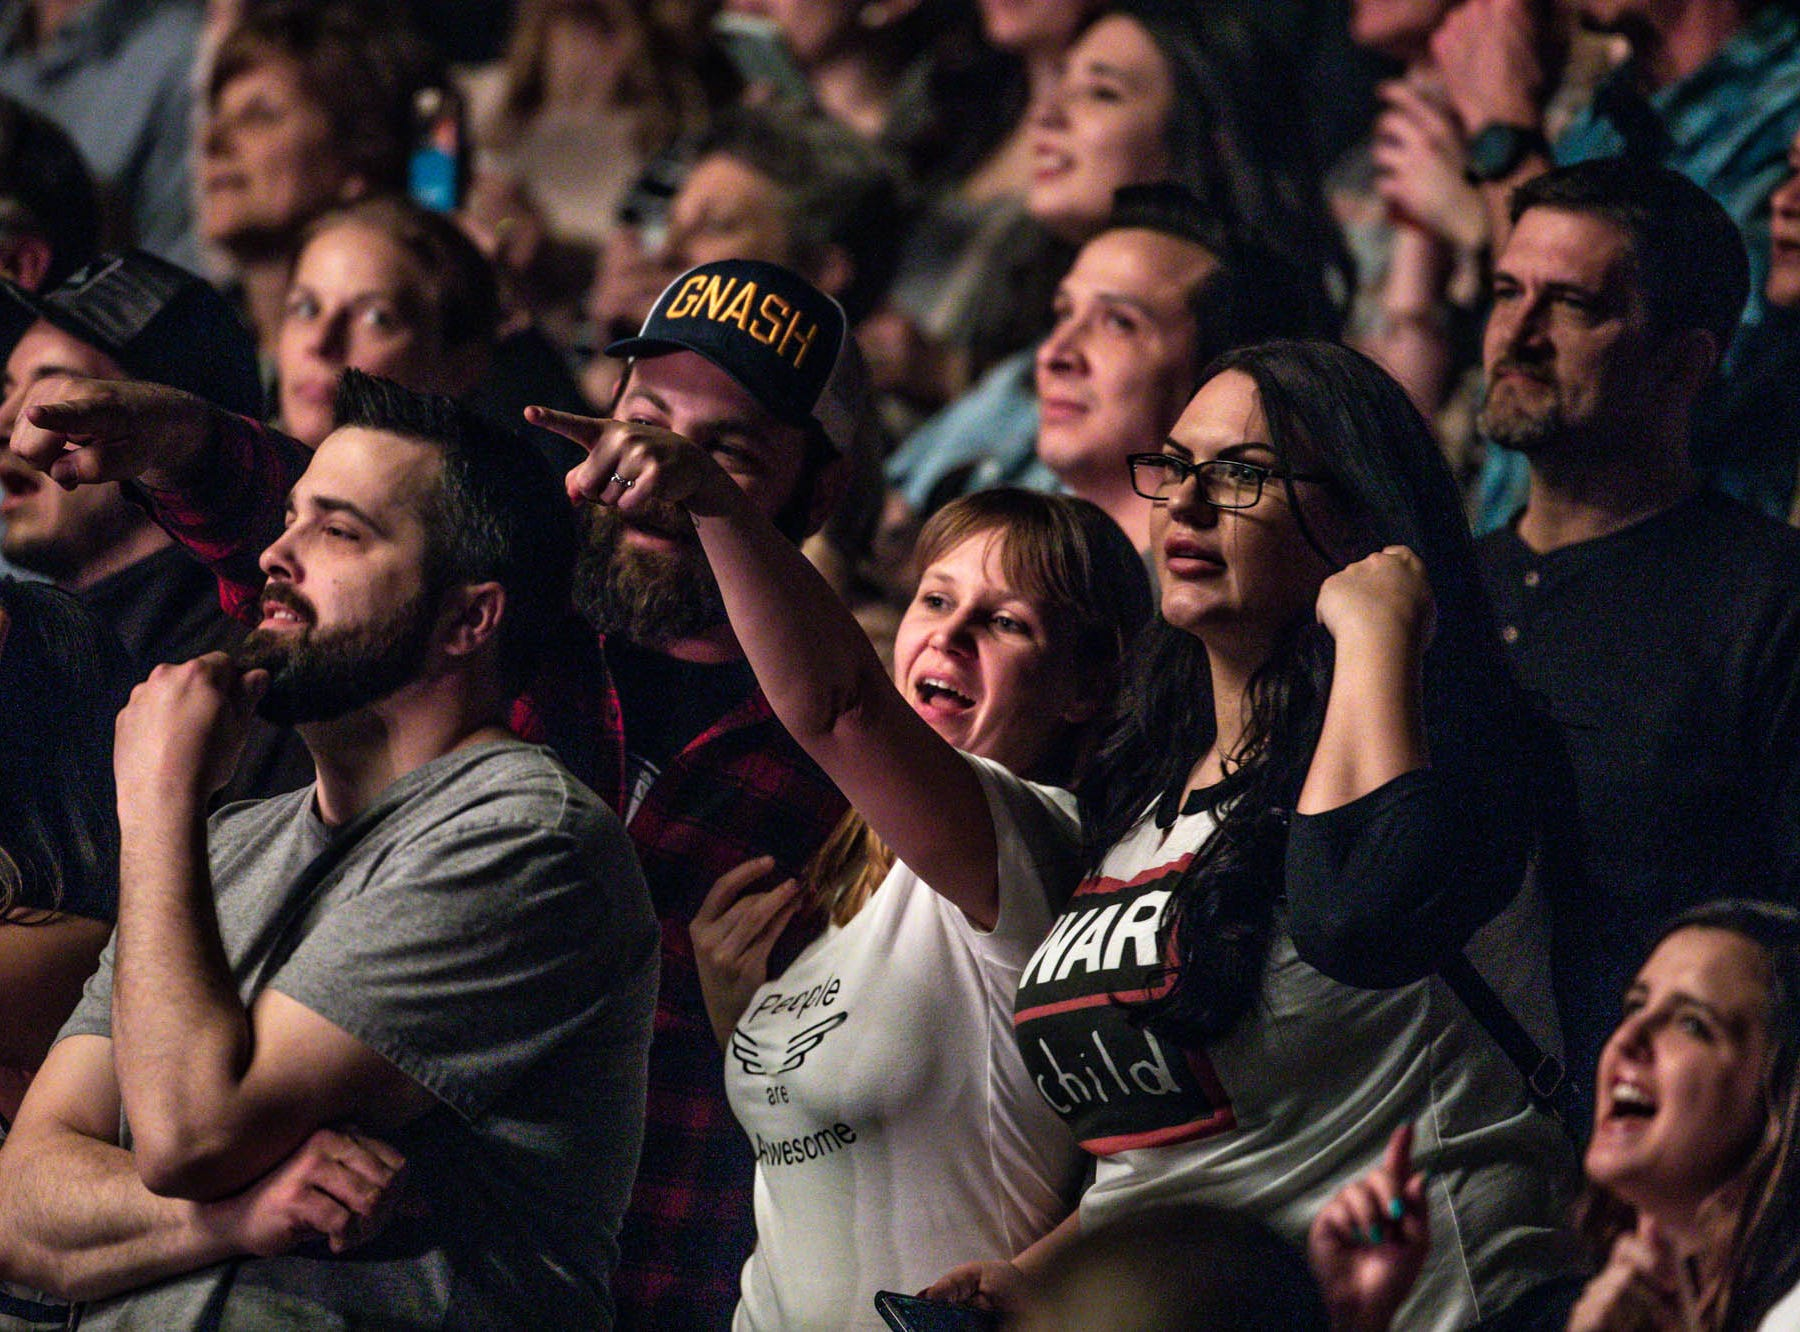 Fans sing and dance to the British band Mumford & Sons at Bankers Life Fieldhouse in Indianapolis on Monday, March 25, 2019.